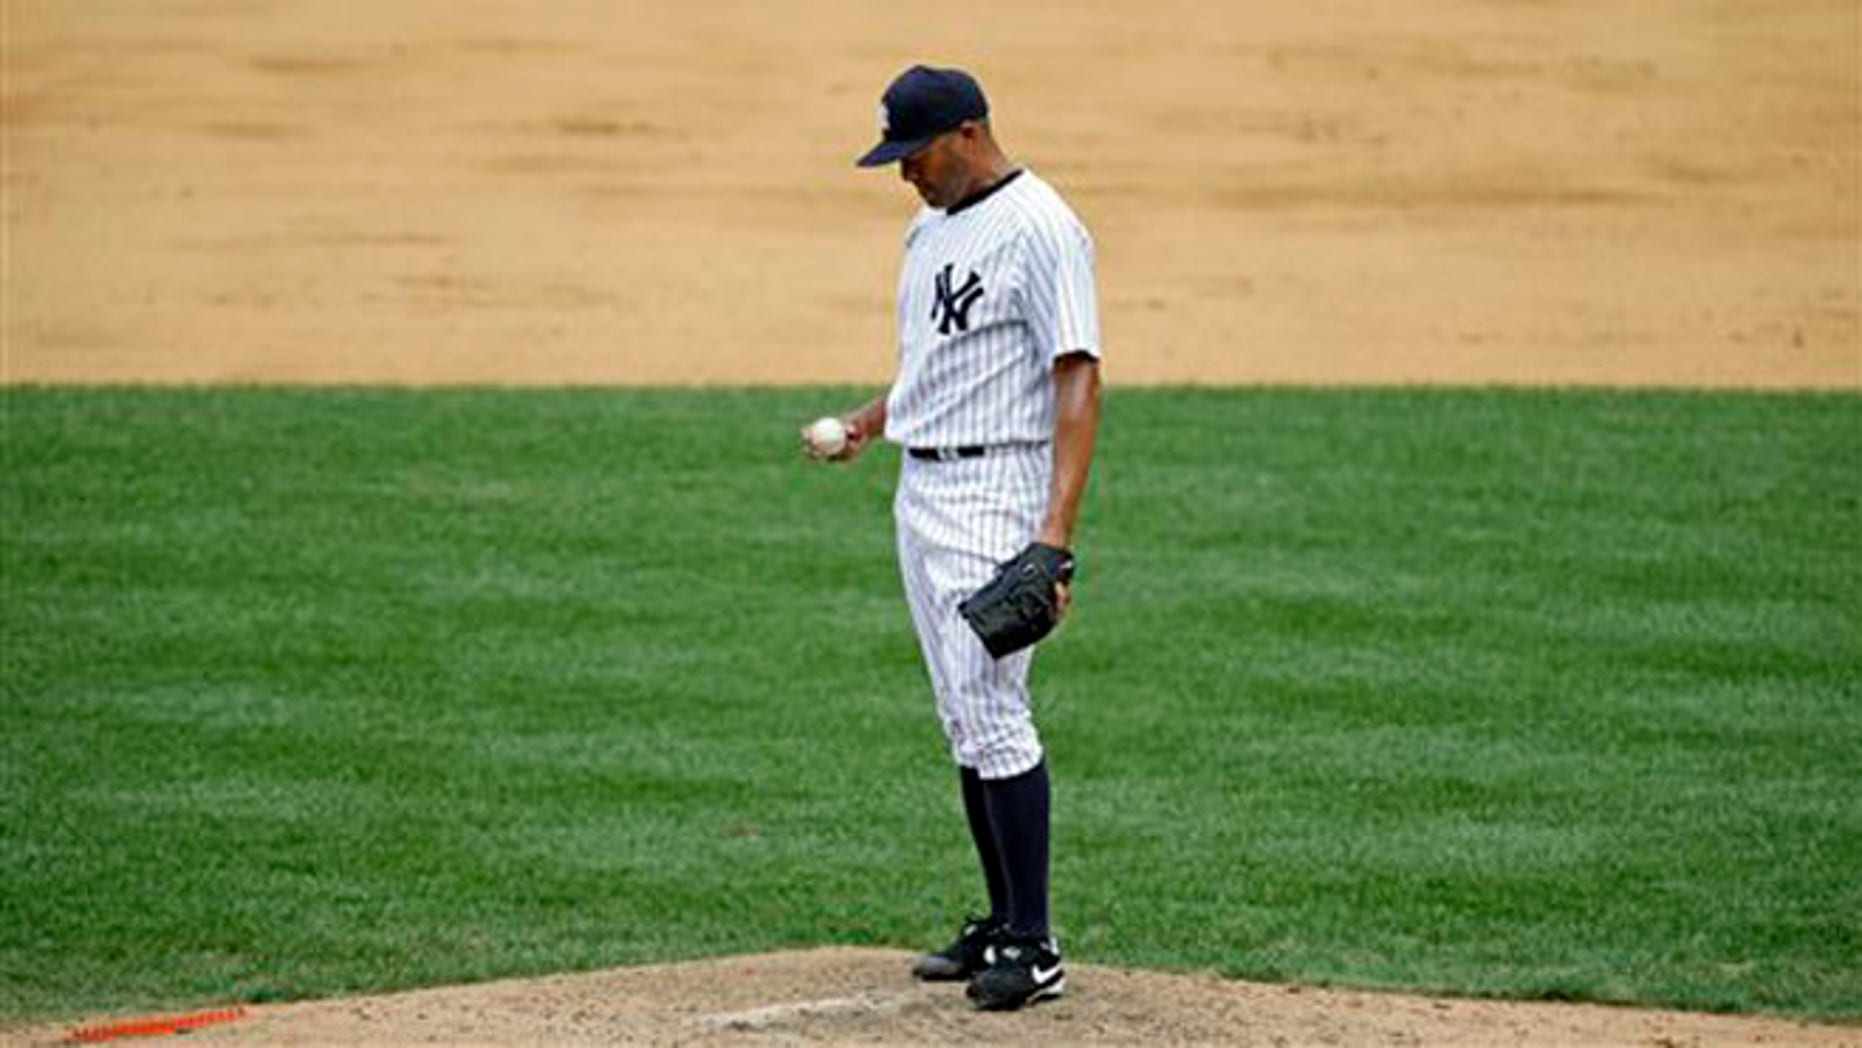 New York Yankees closer Mariano Rivera after allowing a ninth-inning, game-winning, two-run home run to Baltimore Orioles Adam Jones in a baseball game, Sunday, July 7, 2013, in New York.